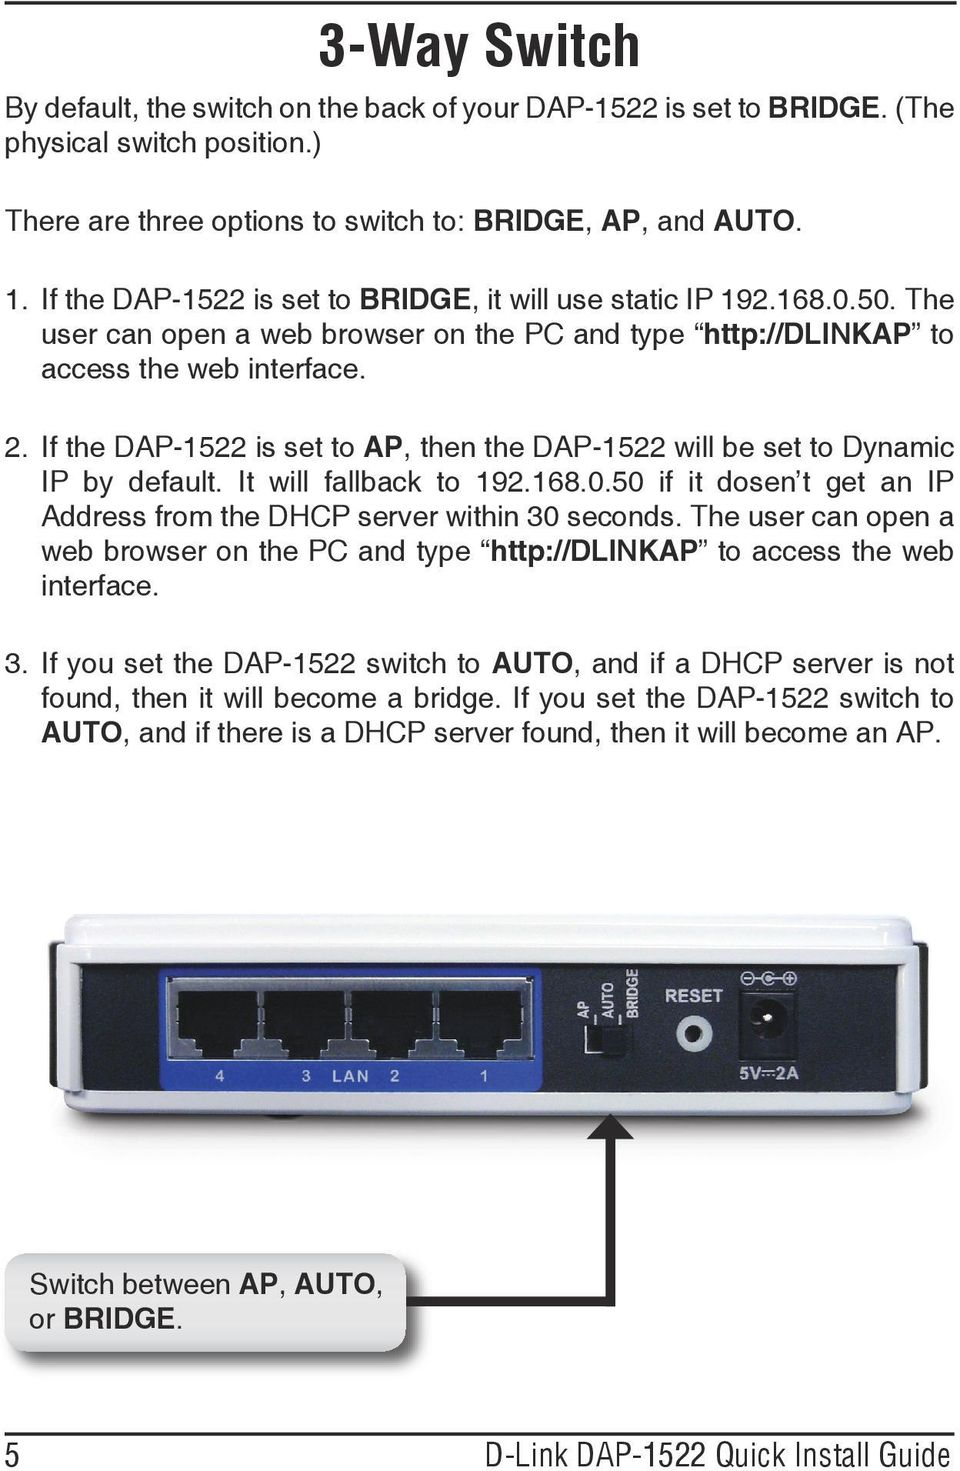 If the DAP-1522 is set to AP, then the DAP-1522 will be set to Dynamic IP by default. It will fallback to 192.168.0.50 if it dosen t get an IP Address from the DHCP server within 30 seconds.